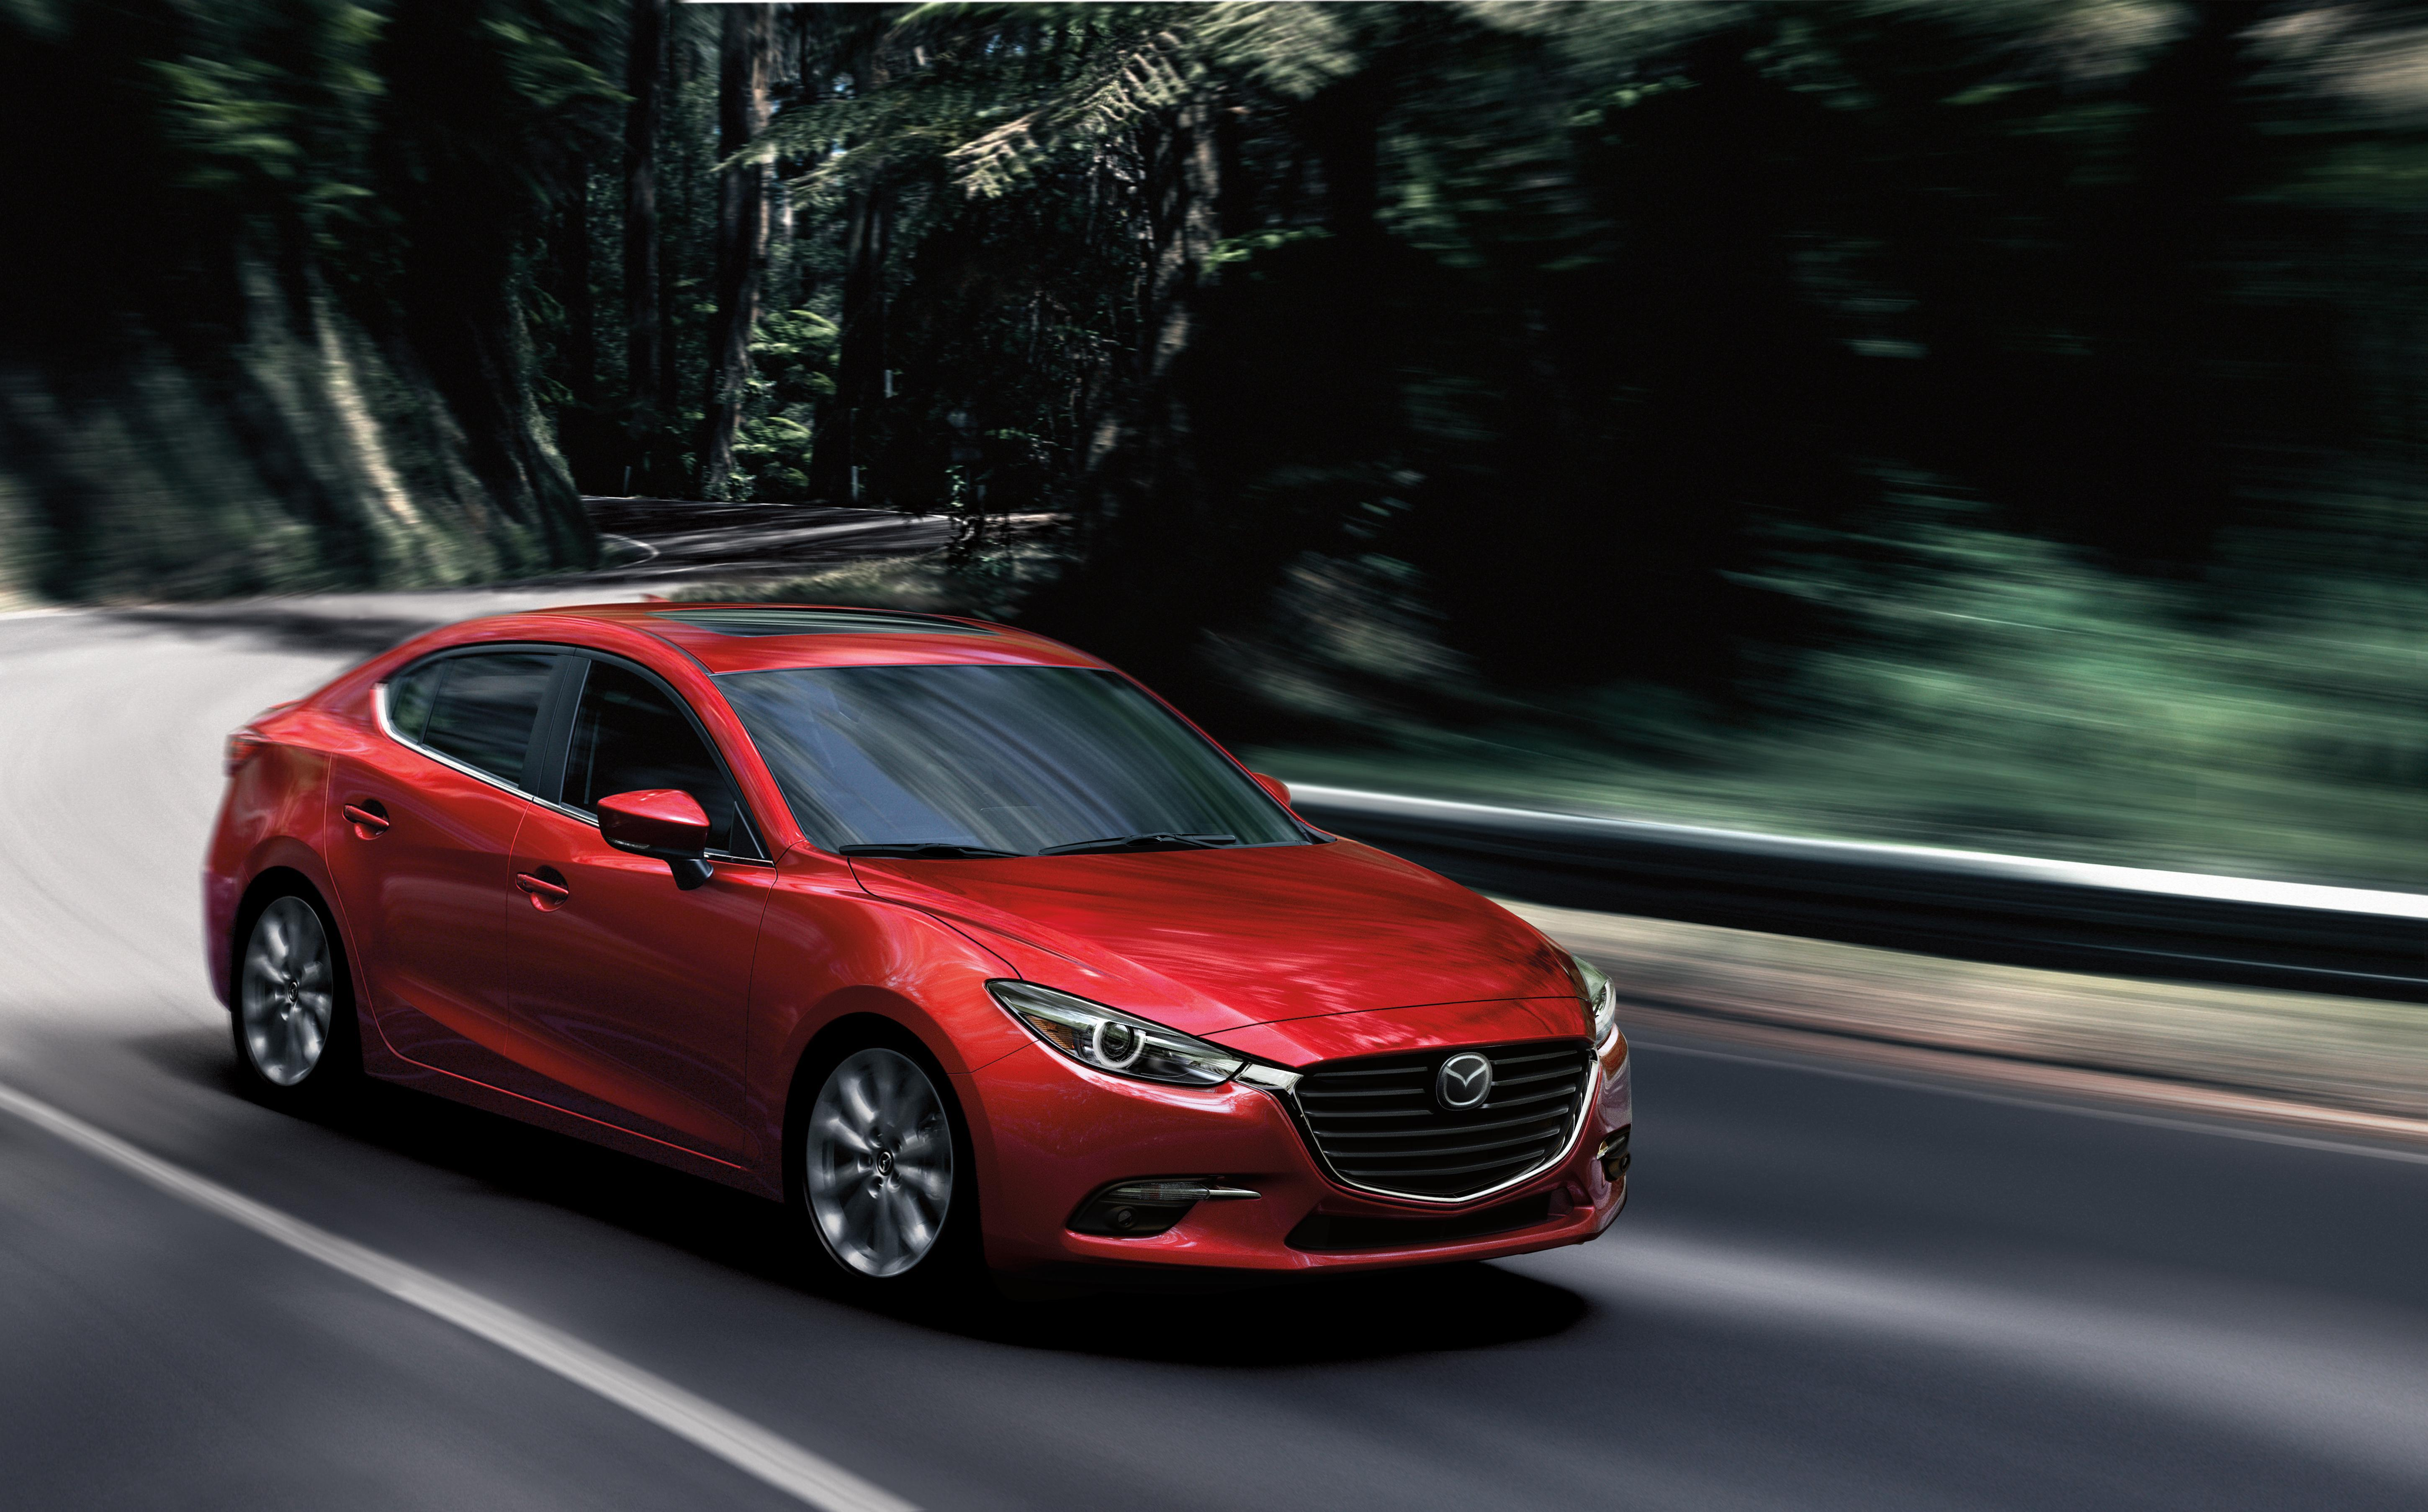 What to Expect from the 2019 Mazda3